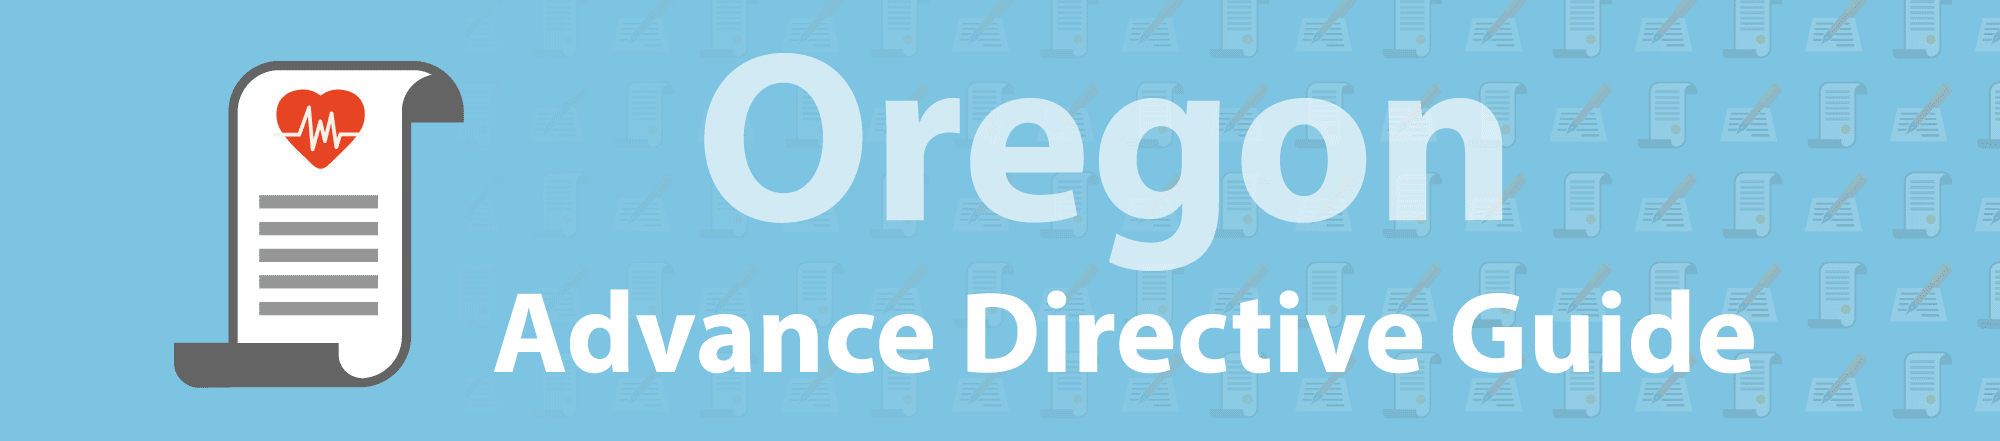 Oregon Advance Directive Guide